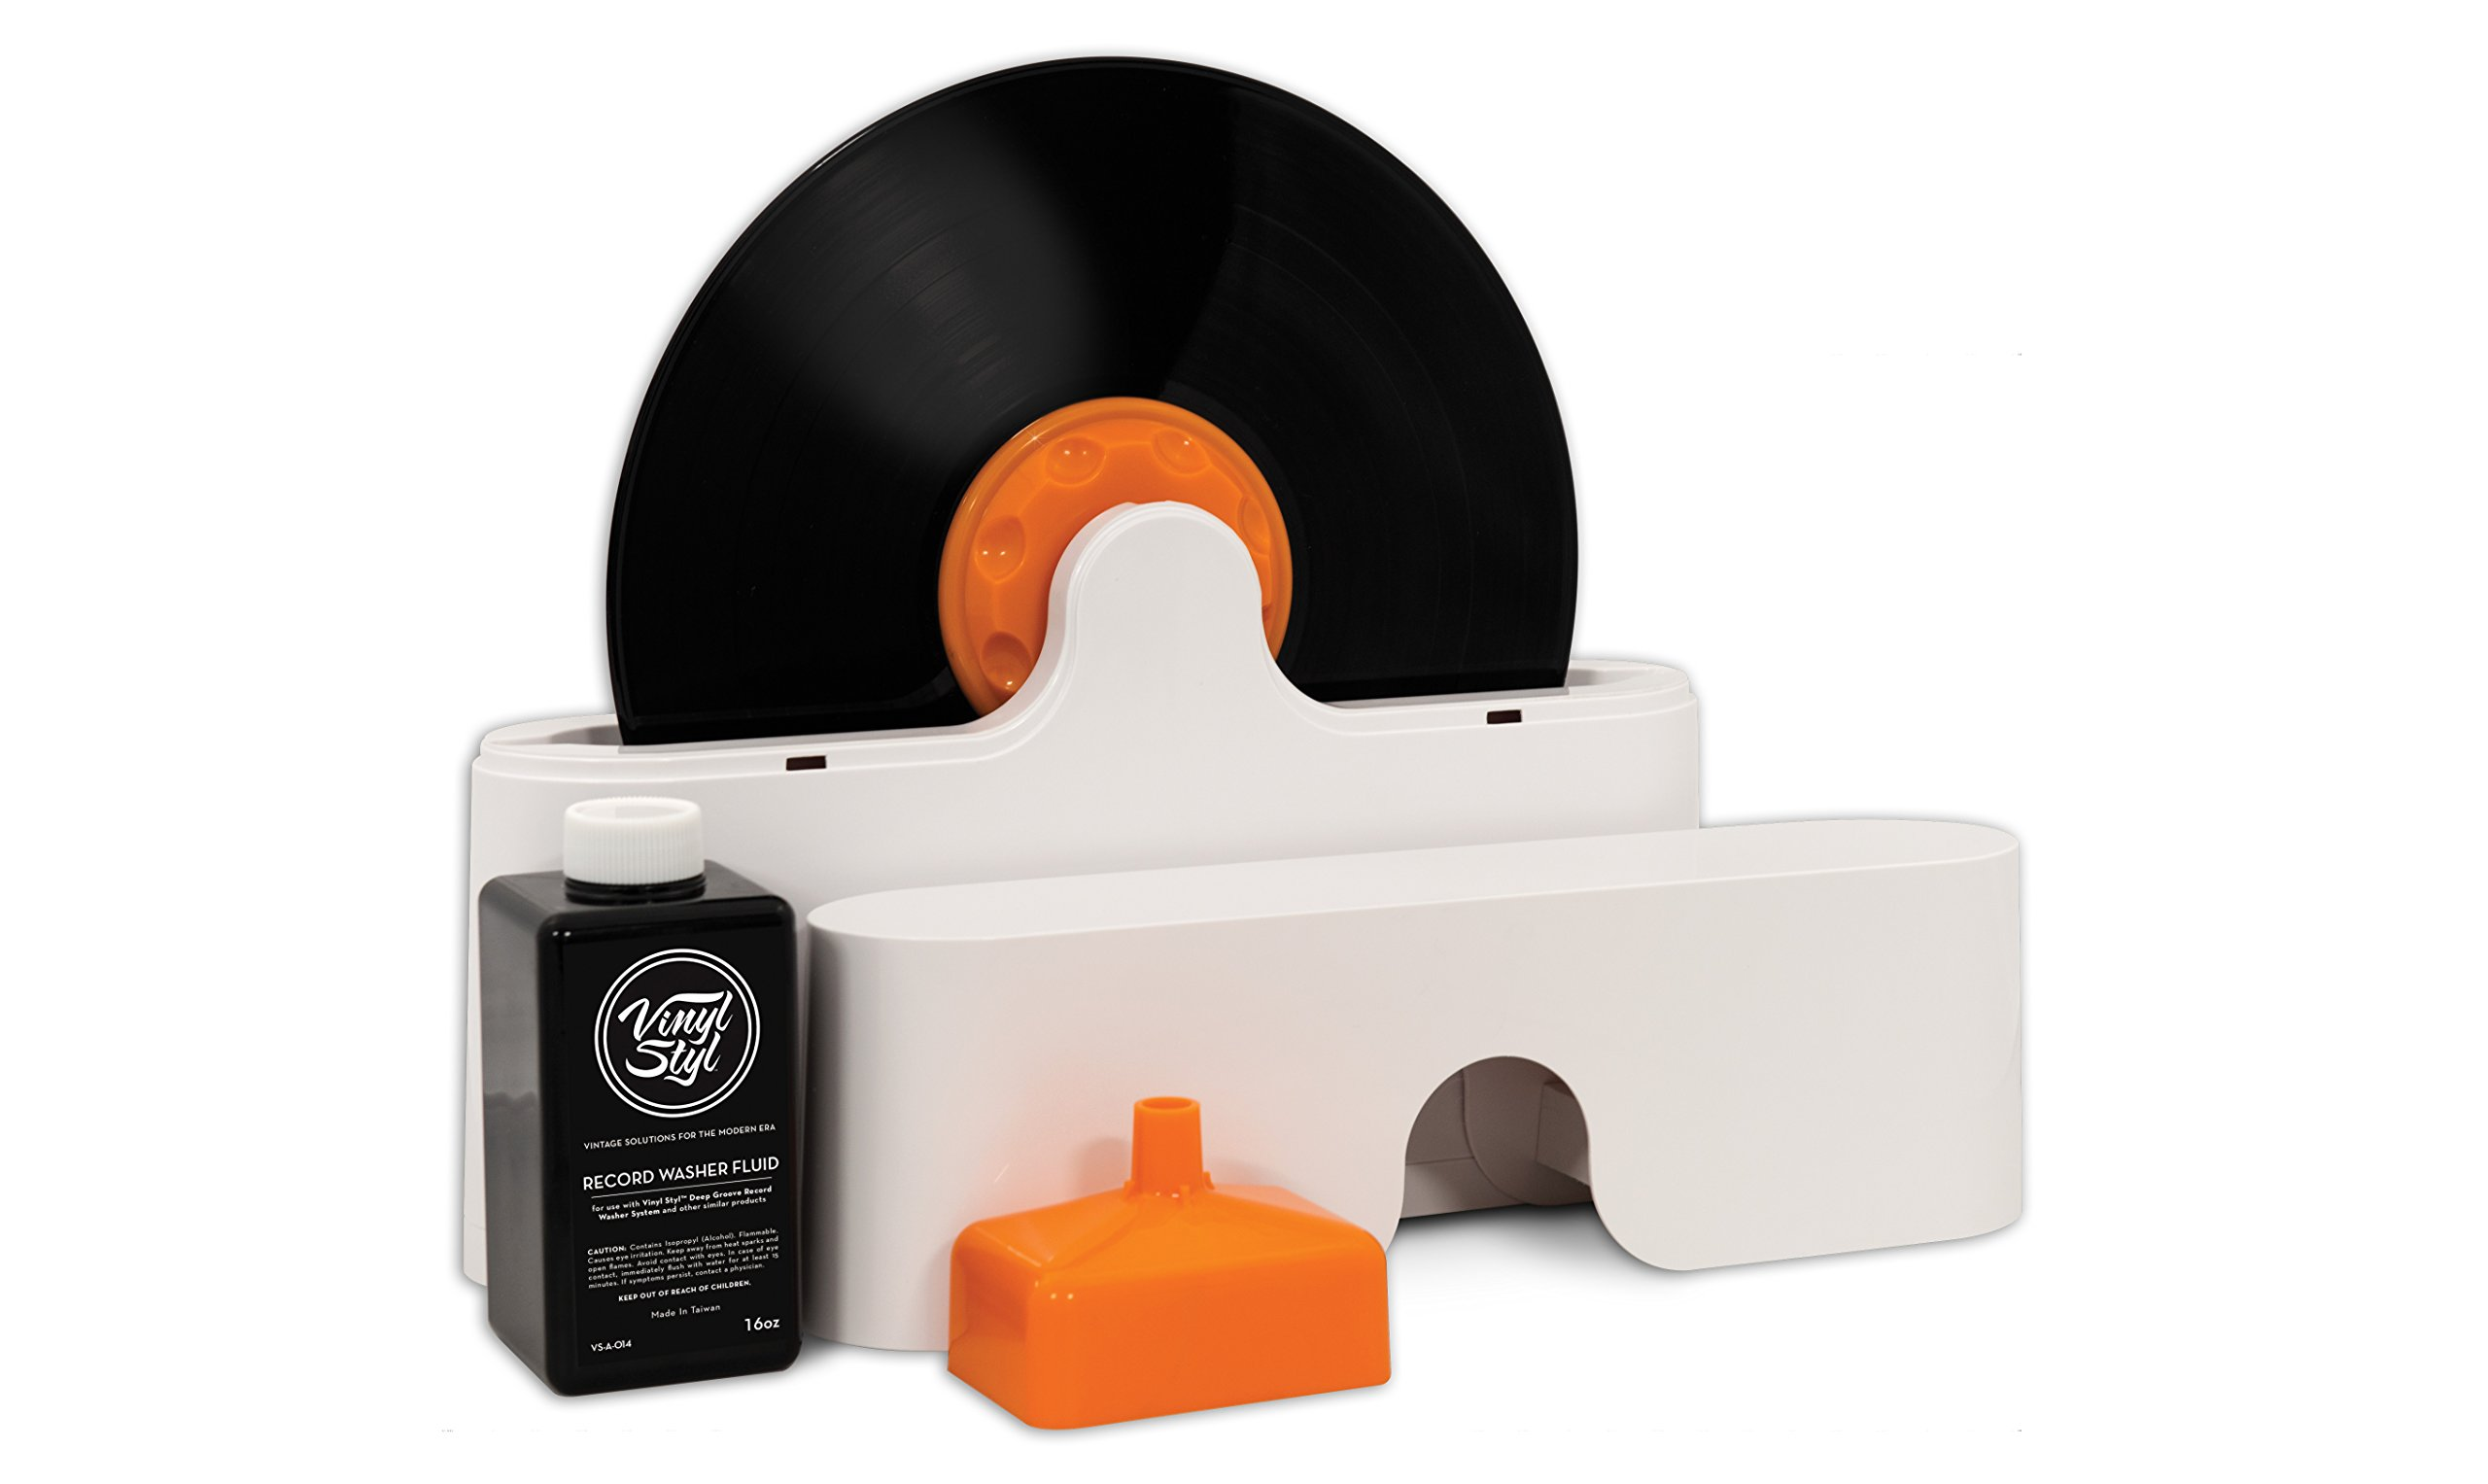 Vinyl Styl Deep Groove Record Washer System by Vinyl Styl